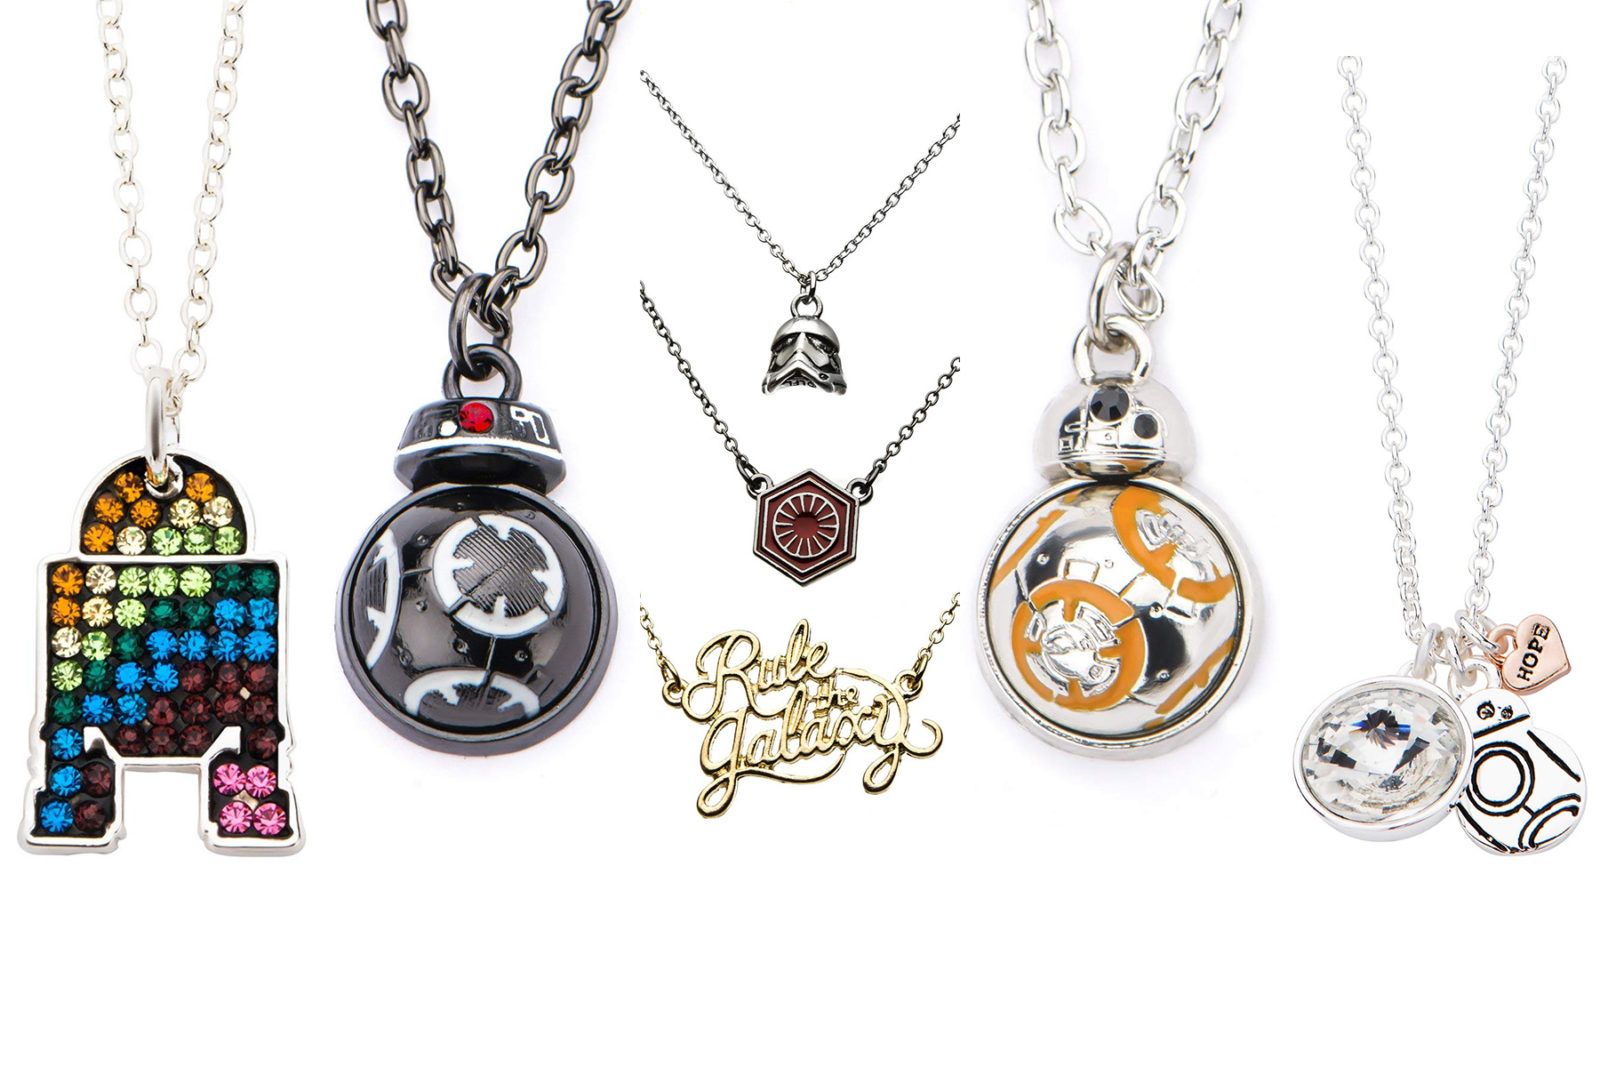 Leia's List – Star Wars Necklaces Under $10